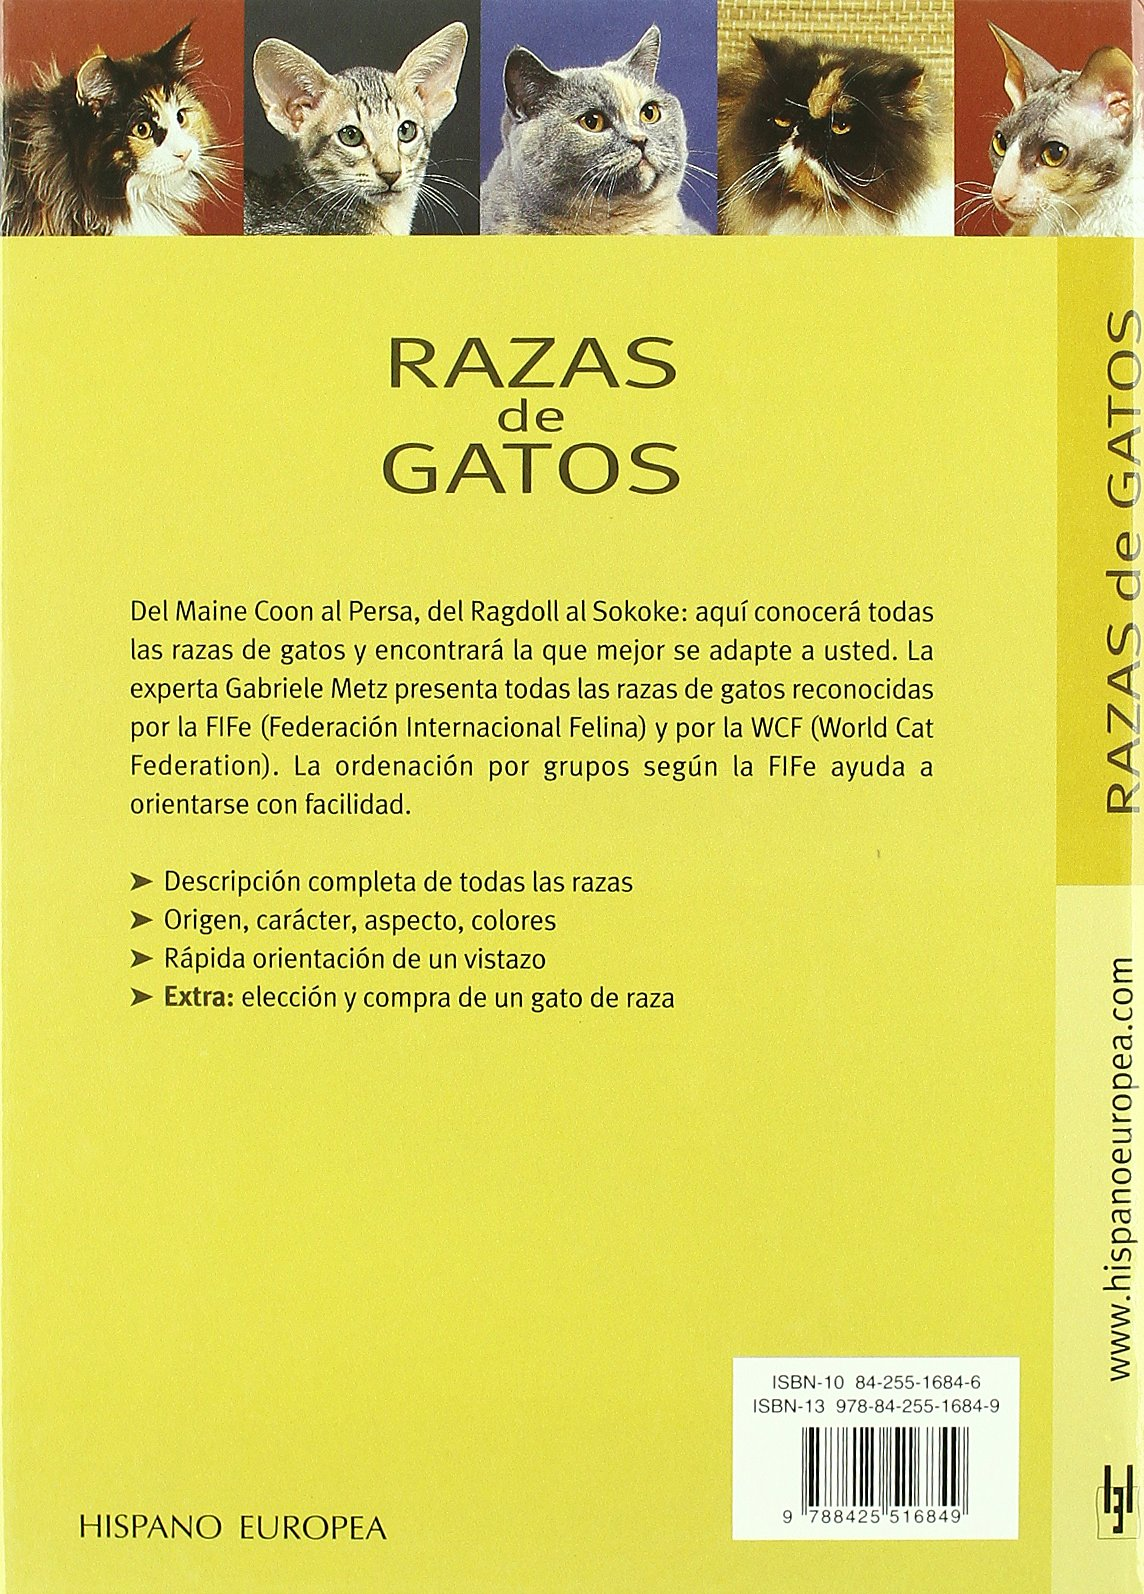 Razas de gatos / Cat Breeds: Todas las razas y todos los colores / All Breeds and All Colors (Spanish Edition): Gabriele Metz: 9788425516849: Amazon.com: ...